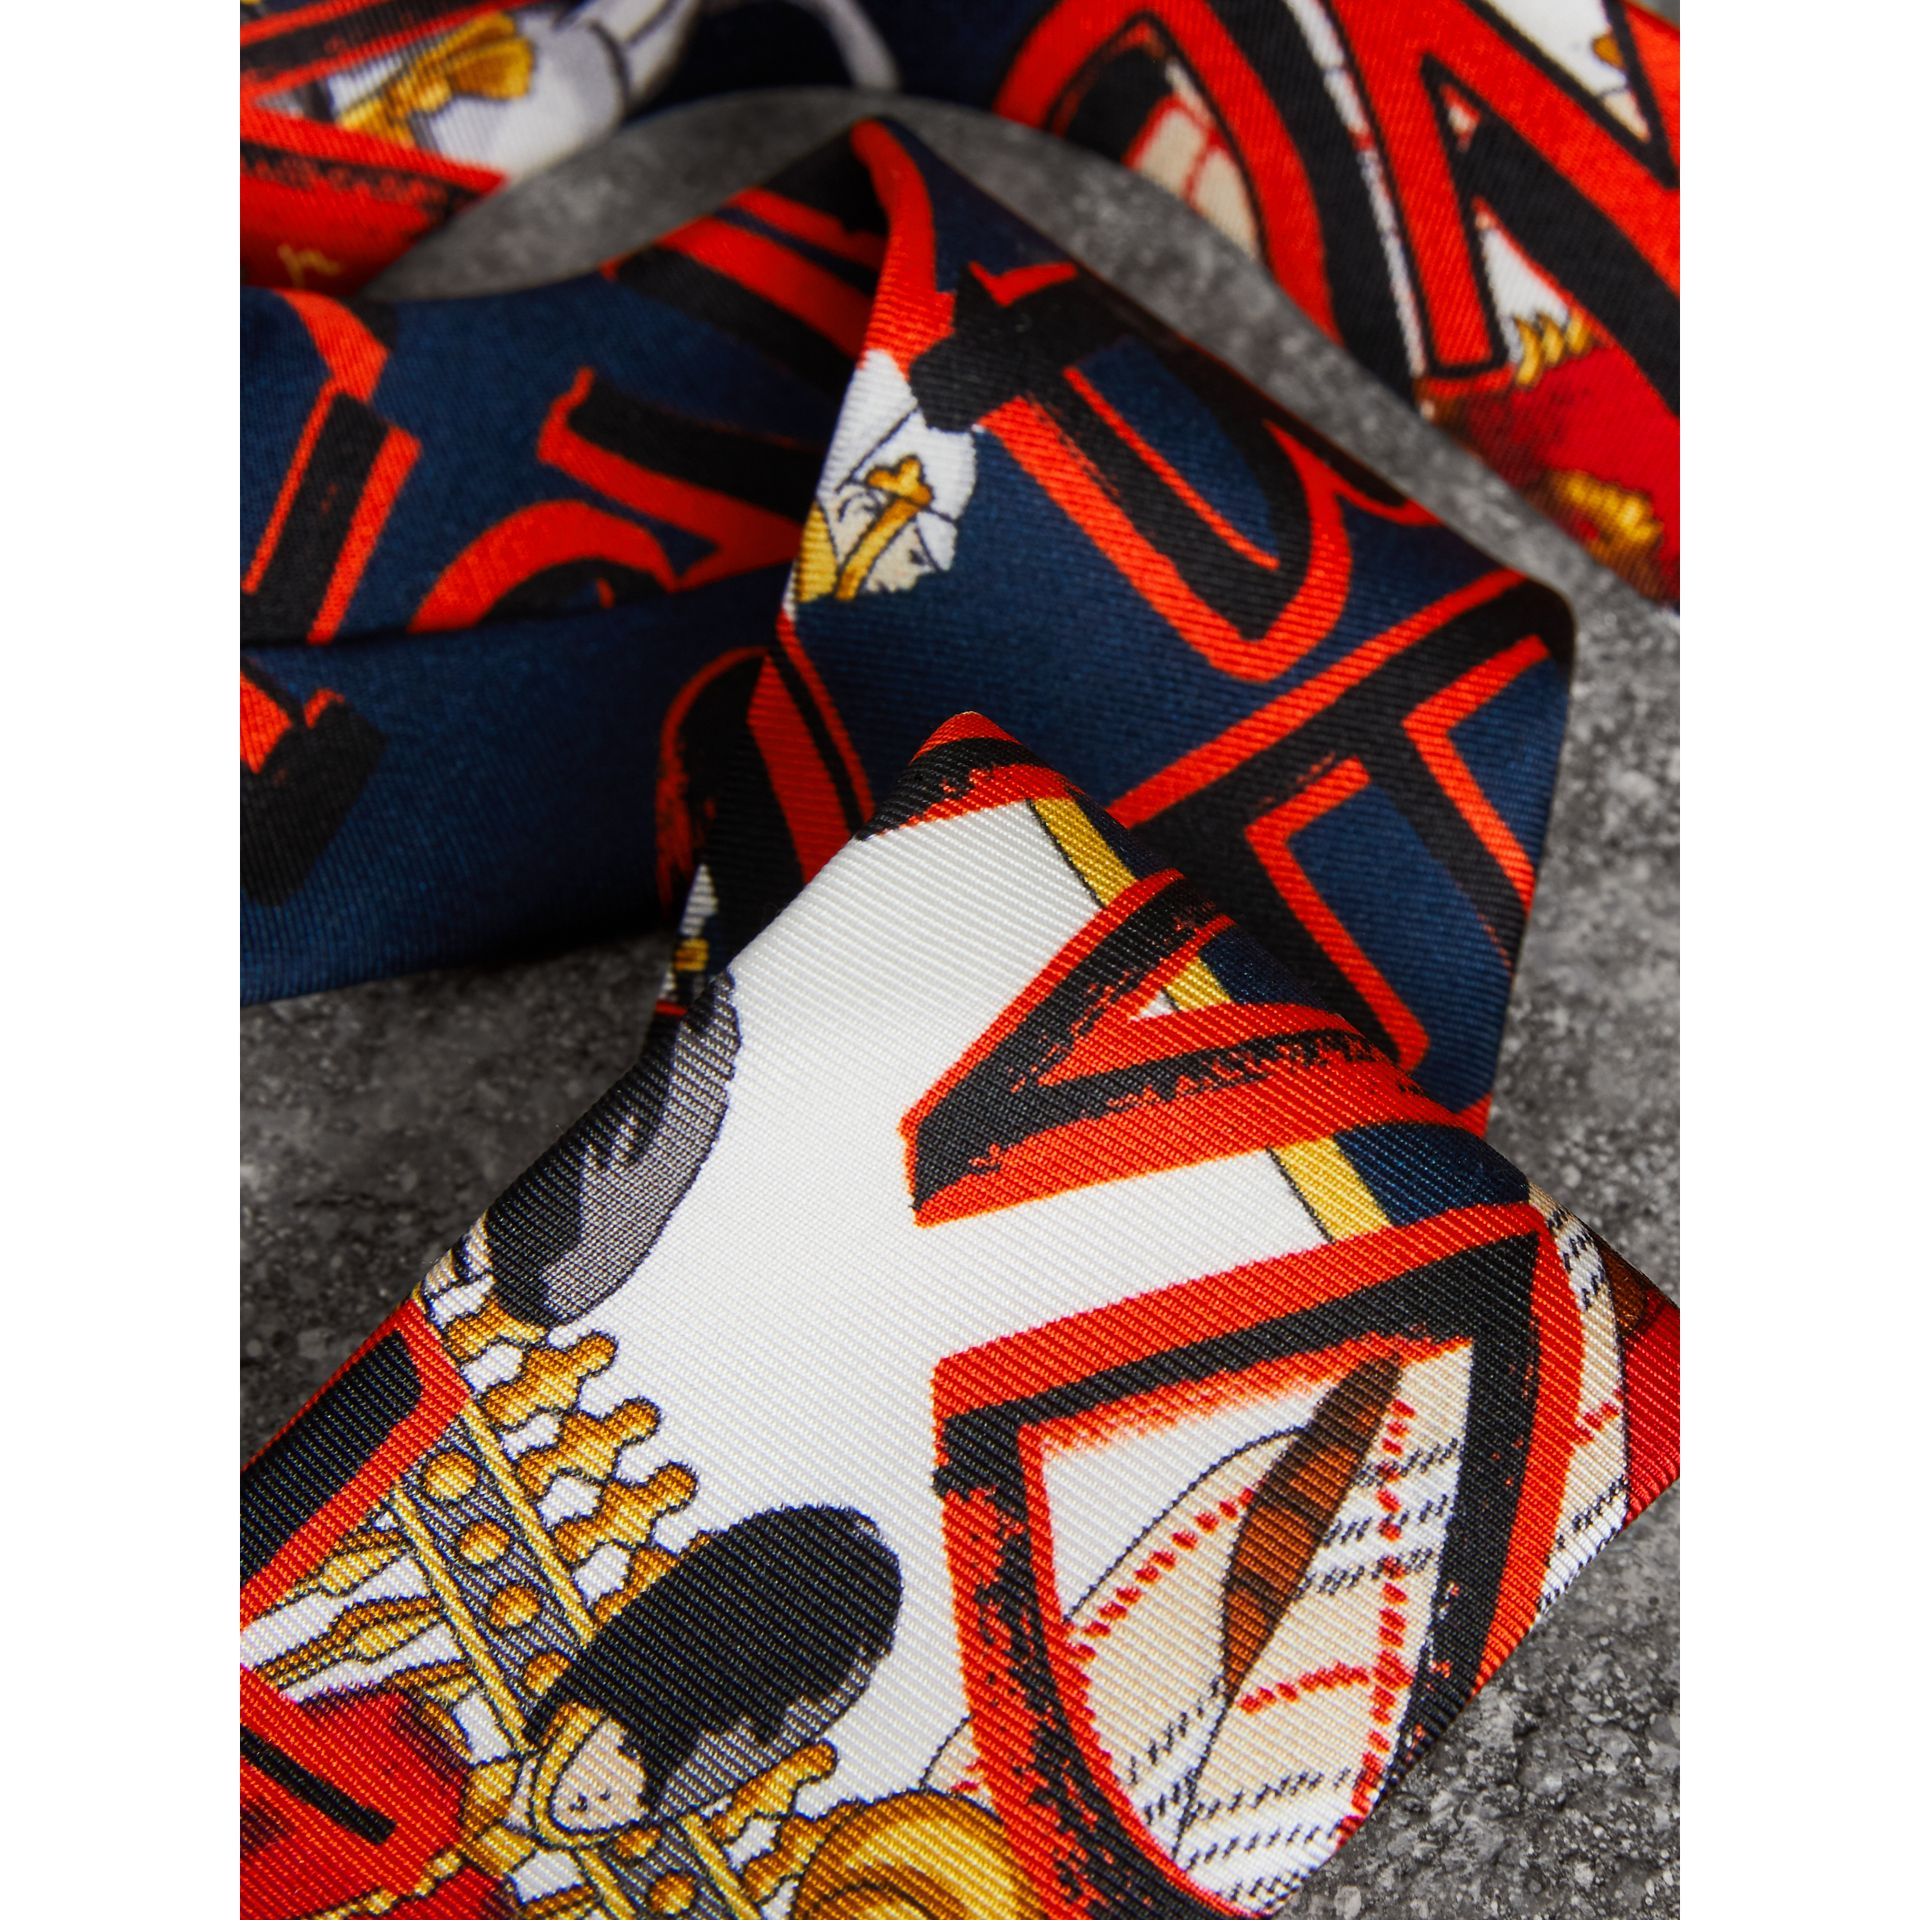 Slim Cut Graffiti Print Silk Tie in Navy - Men | Burberry - gallery image 1